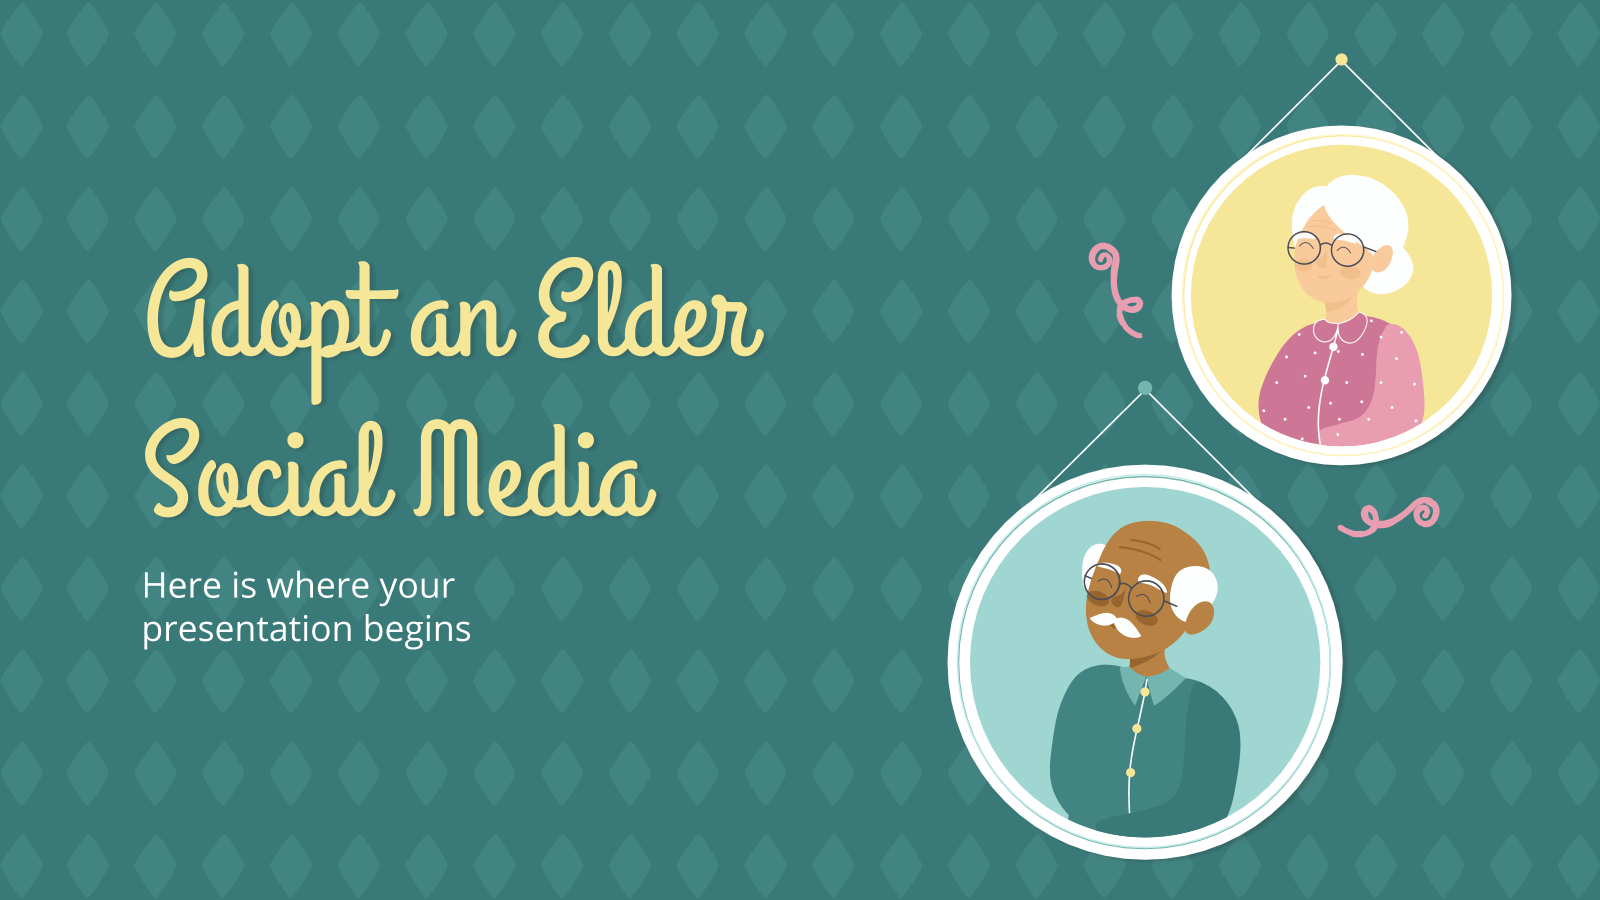 Adopt an Elder Social Media presentation template